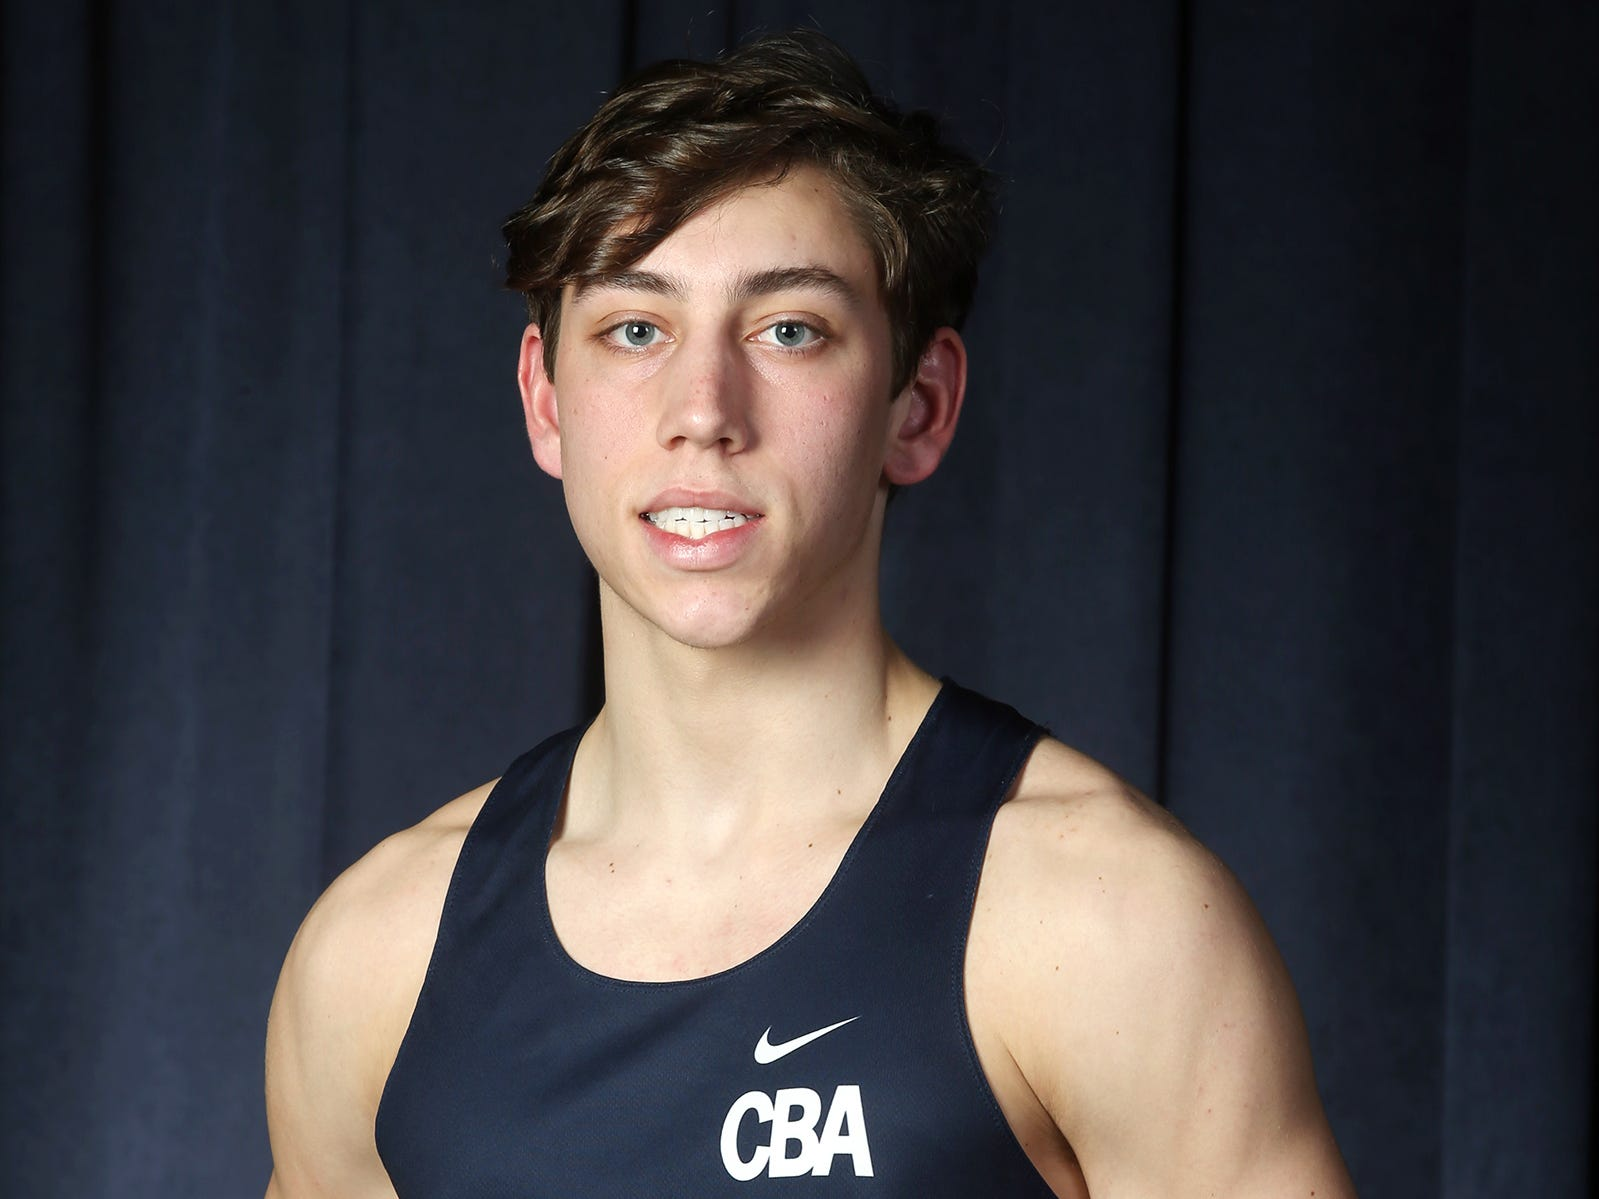 Liam O'Hara of CBA during the All-Shore boys track team photo shoot at the Asbury Park Press in Neptune, NJ Thursday, March 14, 2019.